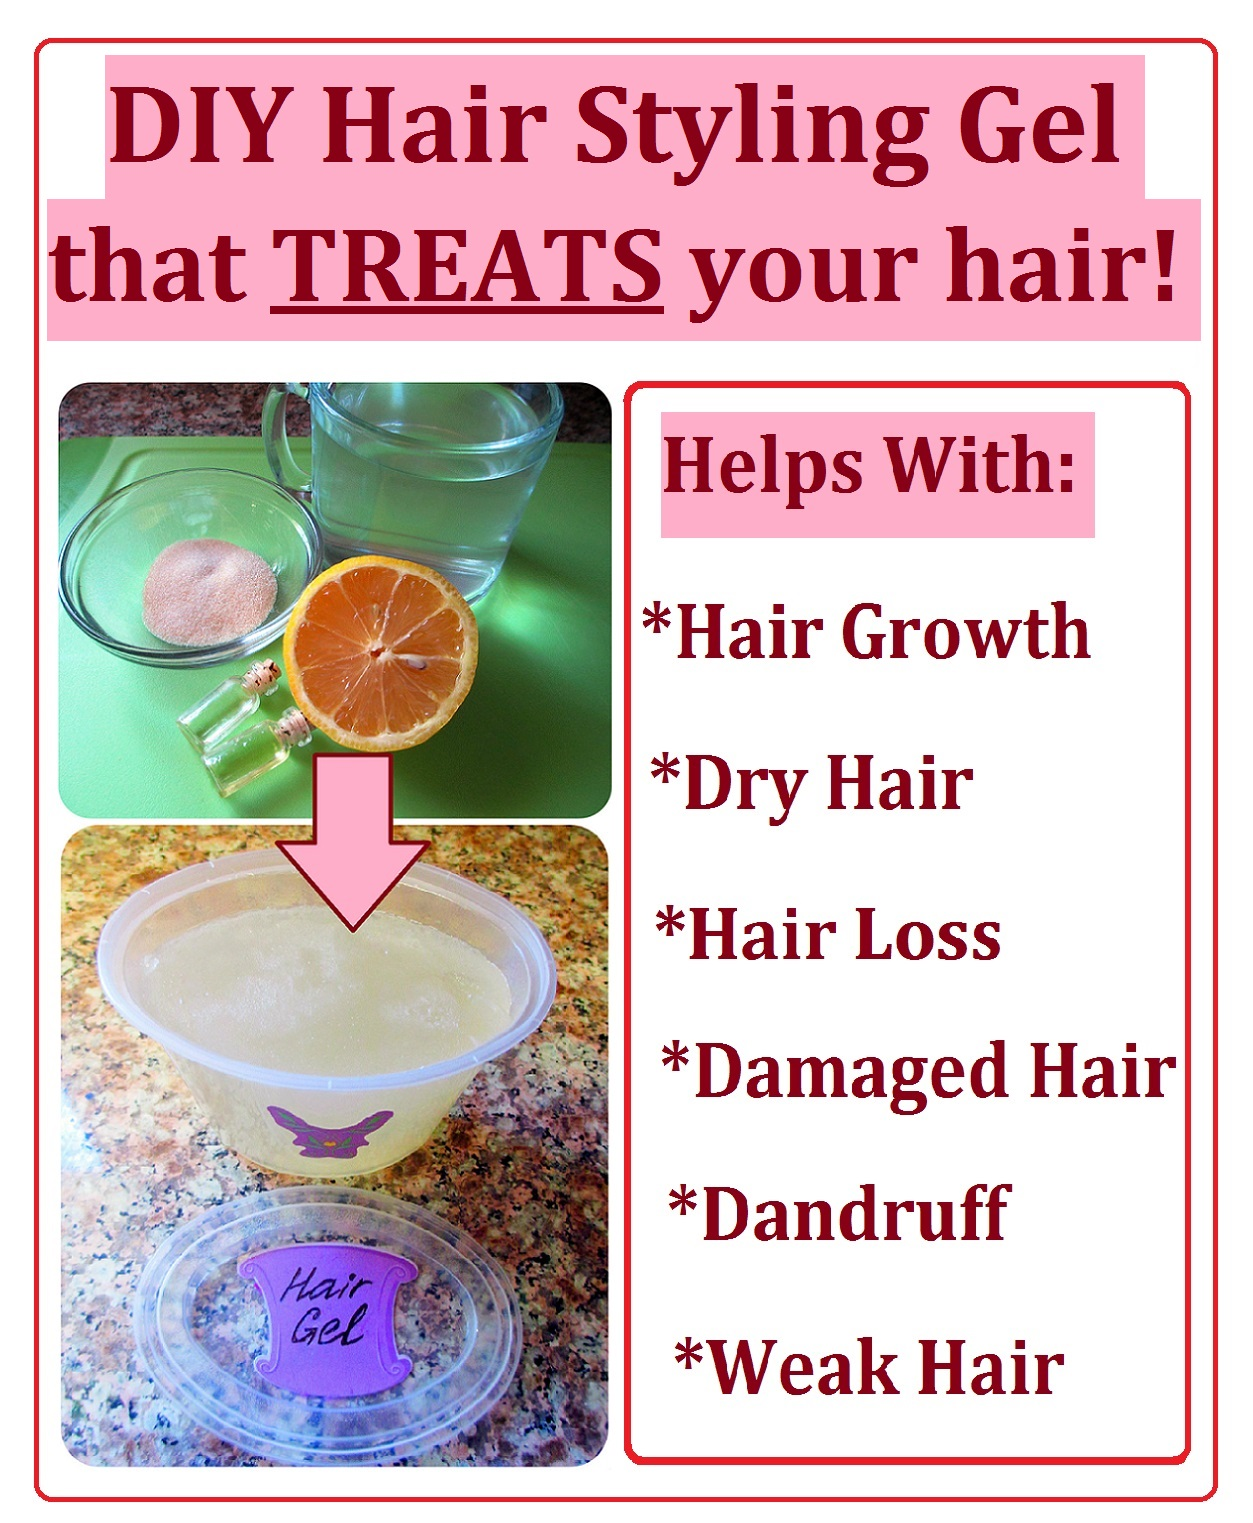 How to Make Hair Styling Gel that TREATS your hair. Easy and Quick DIY